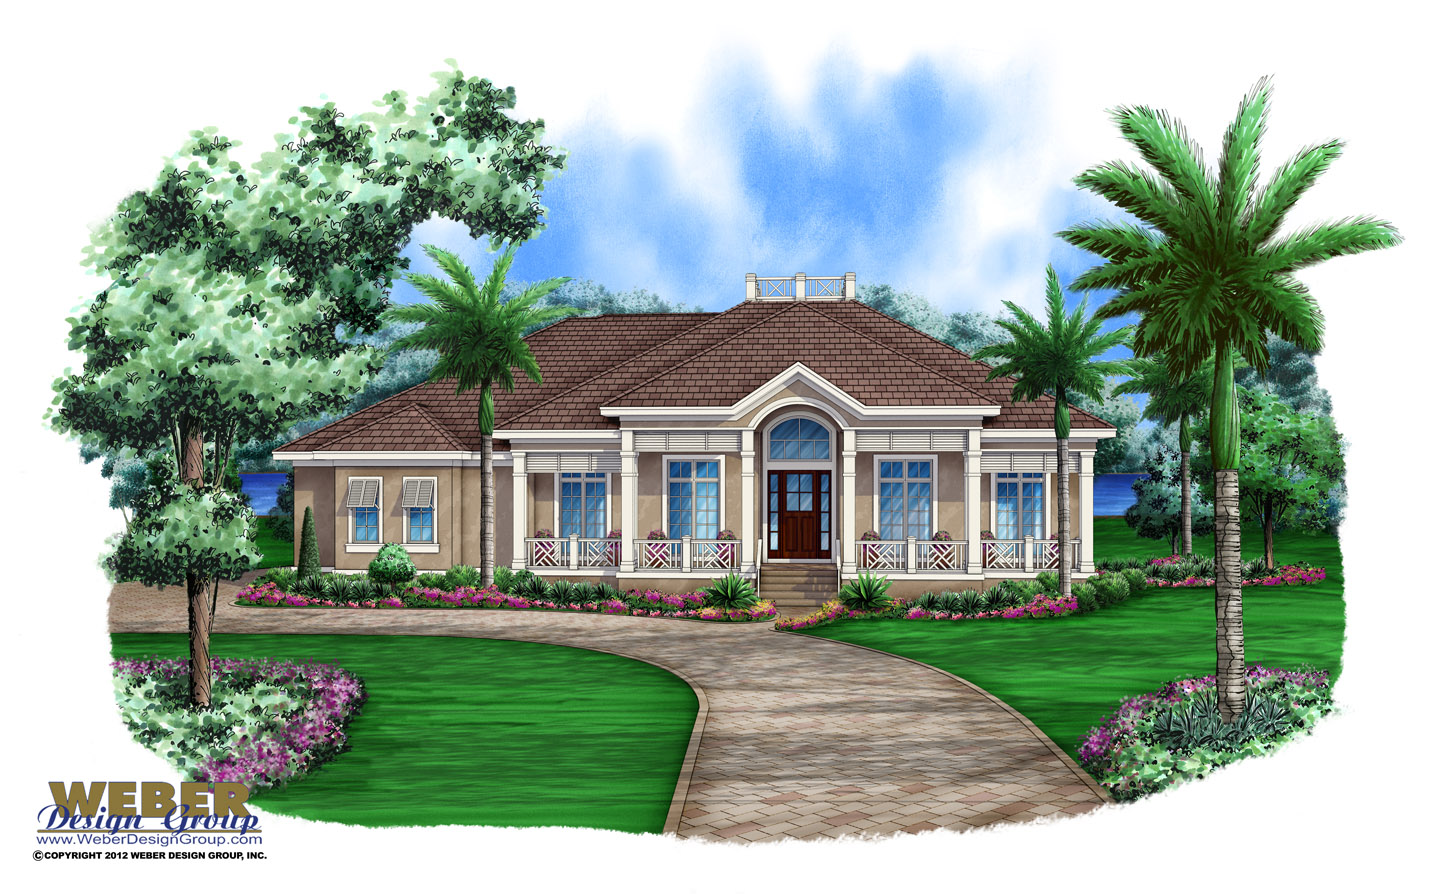 Beach house plan olde florida west indies beach home for House plans for florida homes